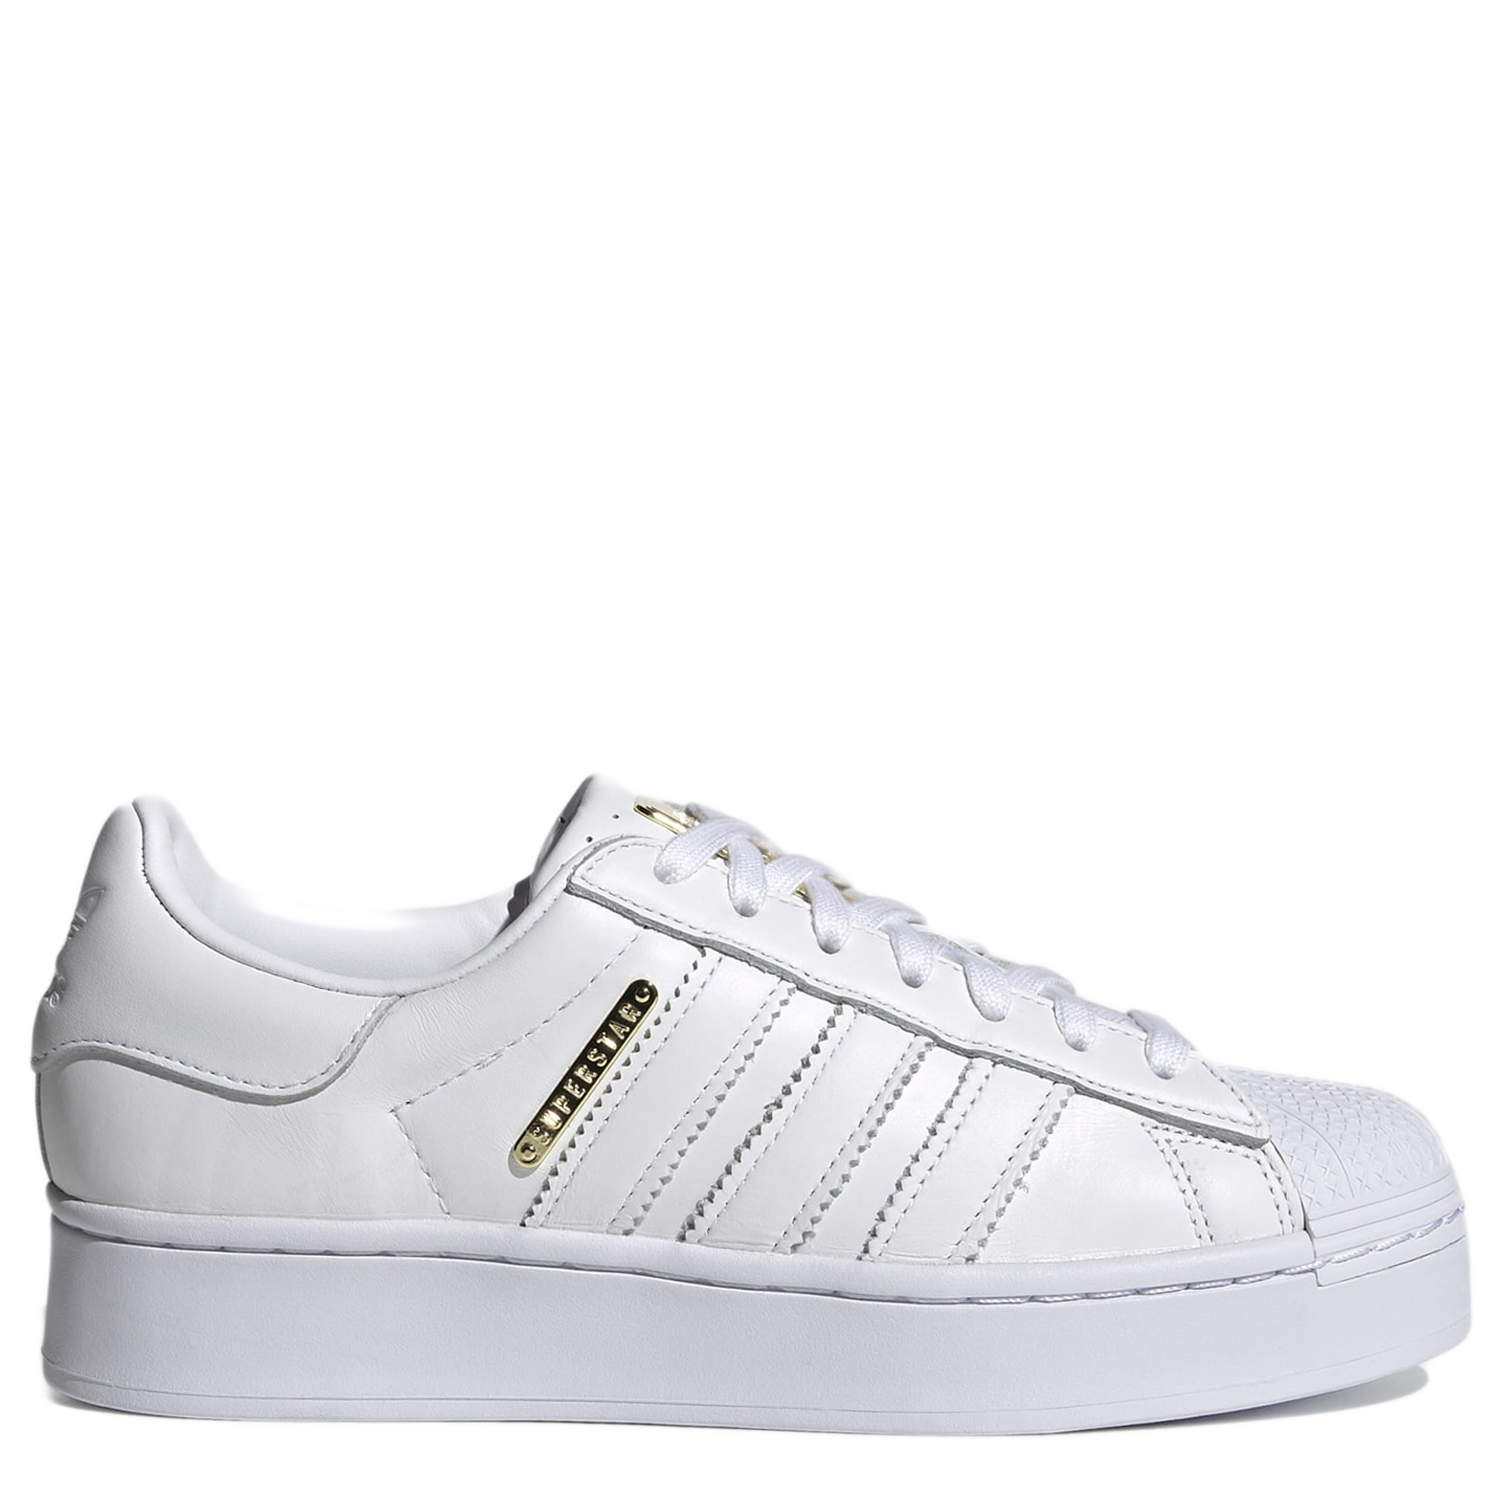 Adidas Originals SNEAKERS SUPERSTAR BOLD W